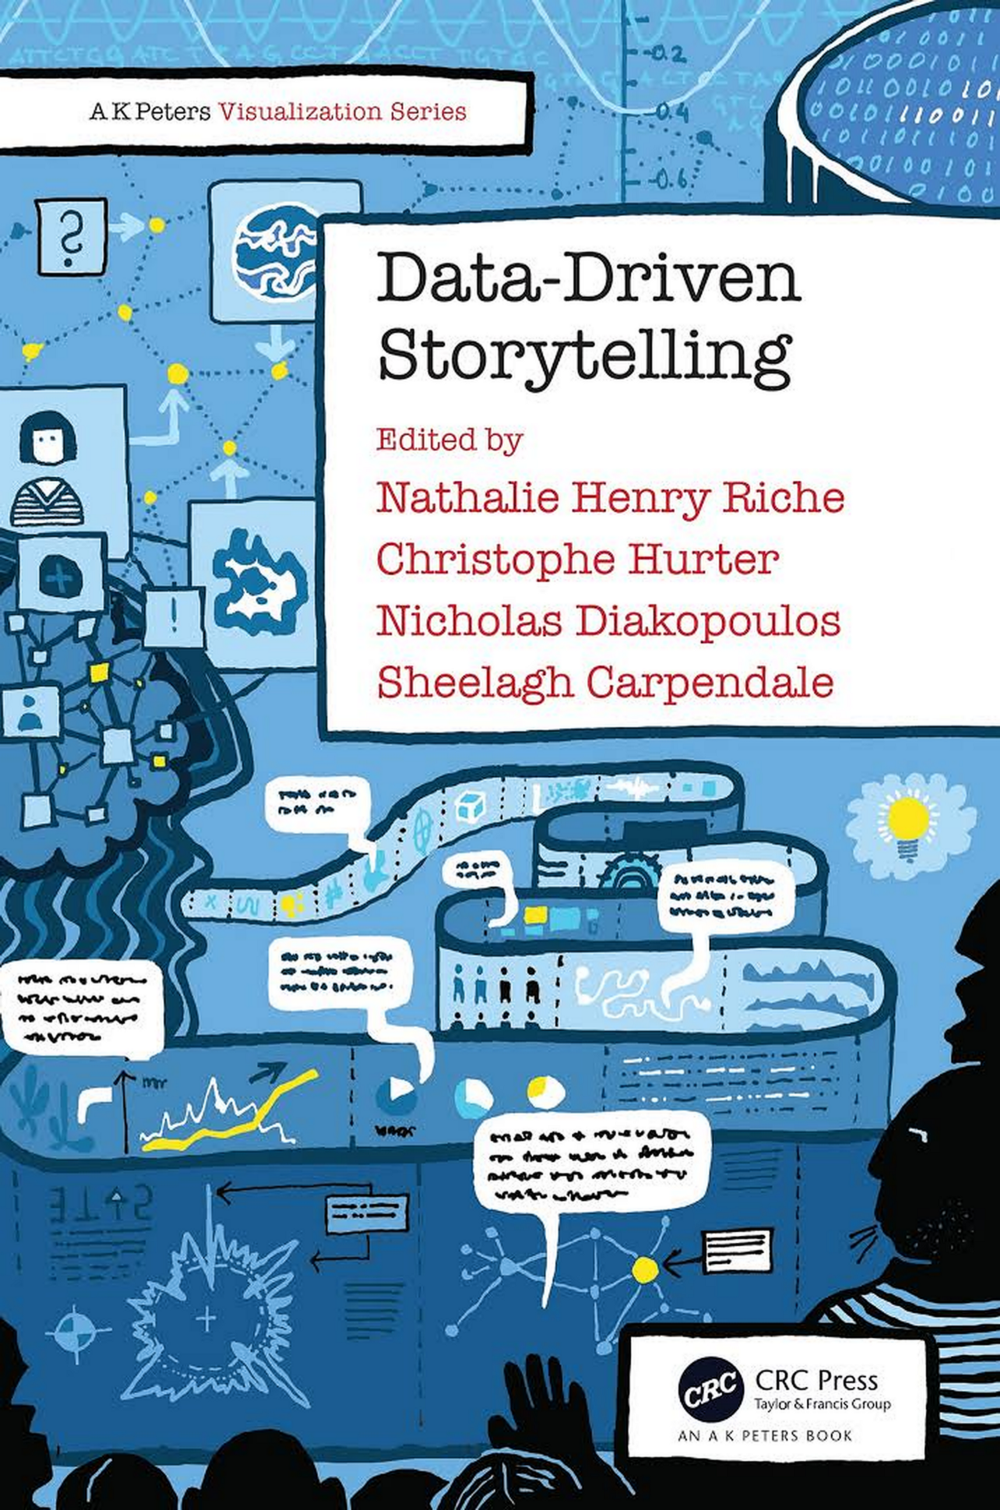 """""""Data-Driven Storytelling"""" by N. H. Riche, C. Hurter, N. Diakopoulos and S. Carpendale"""